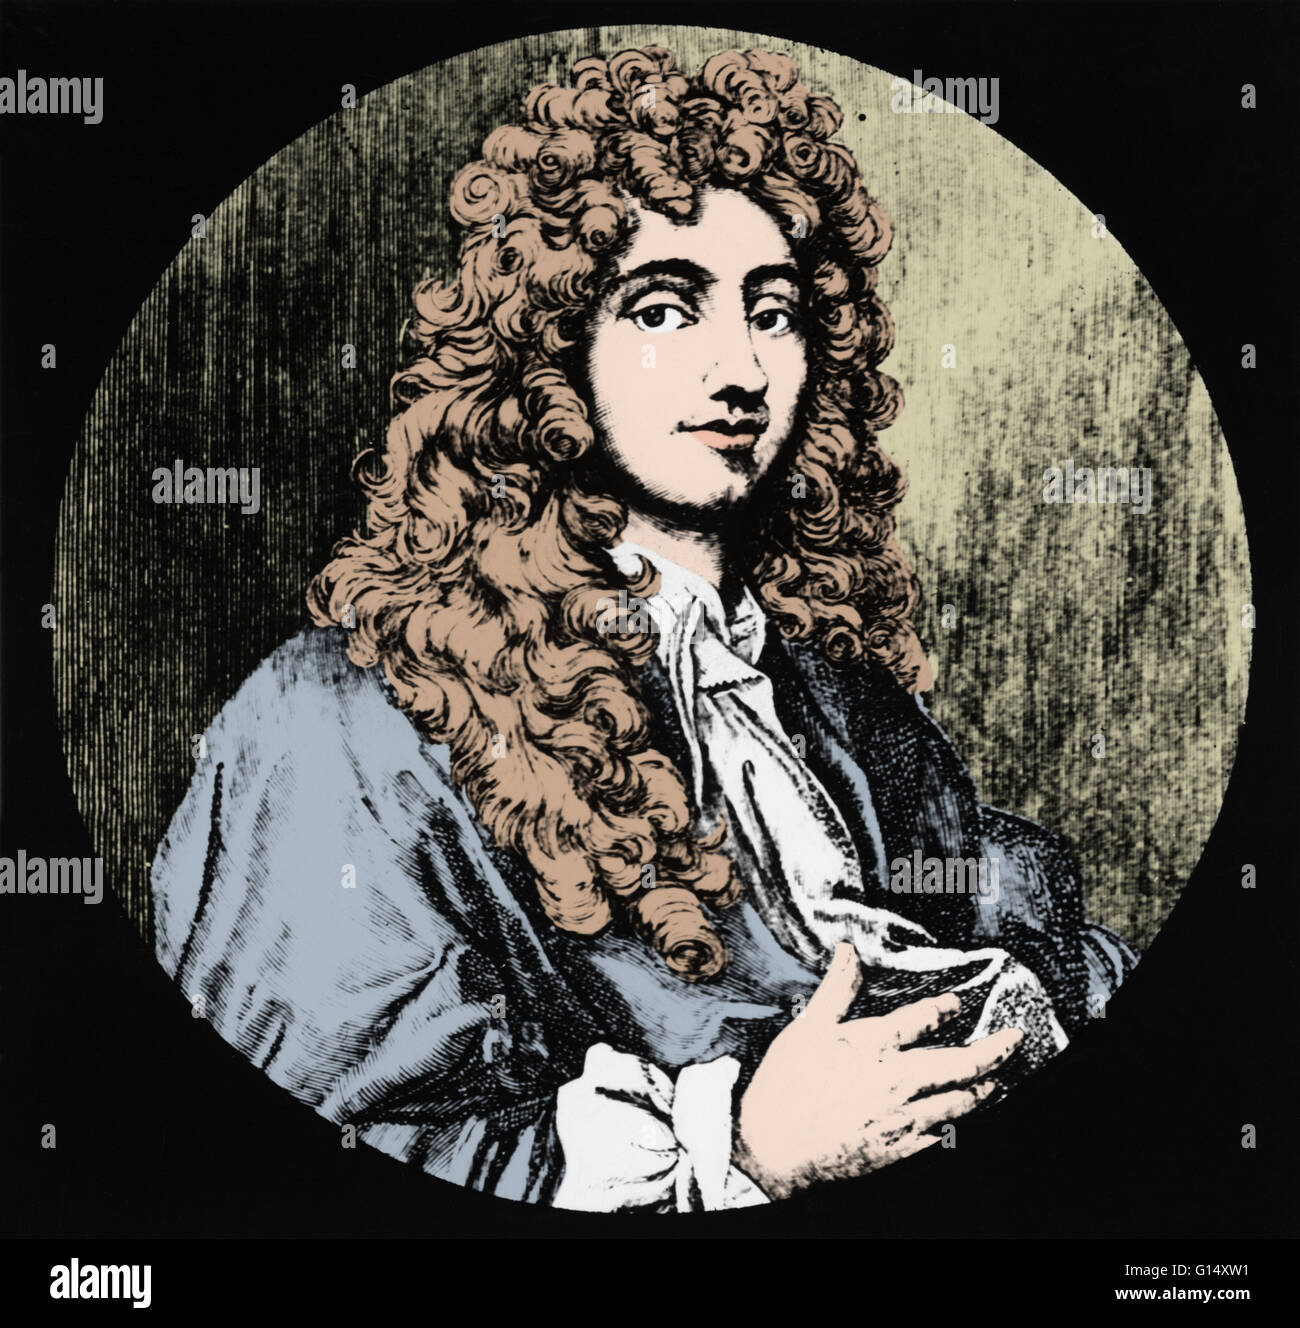 Christiaan Huygens (April 14, 1629 - July 8, 1695) was a prominent Dutch mathematician, astronomer, physicist, probabilist, - Stock Image